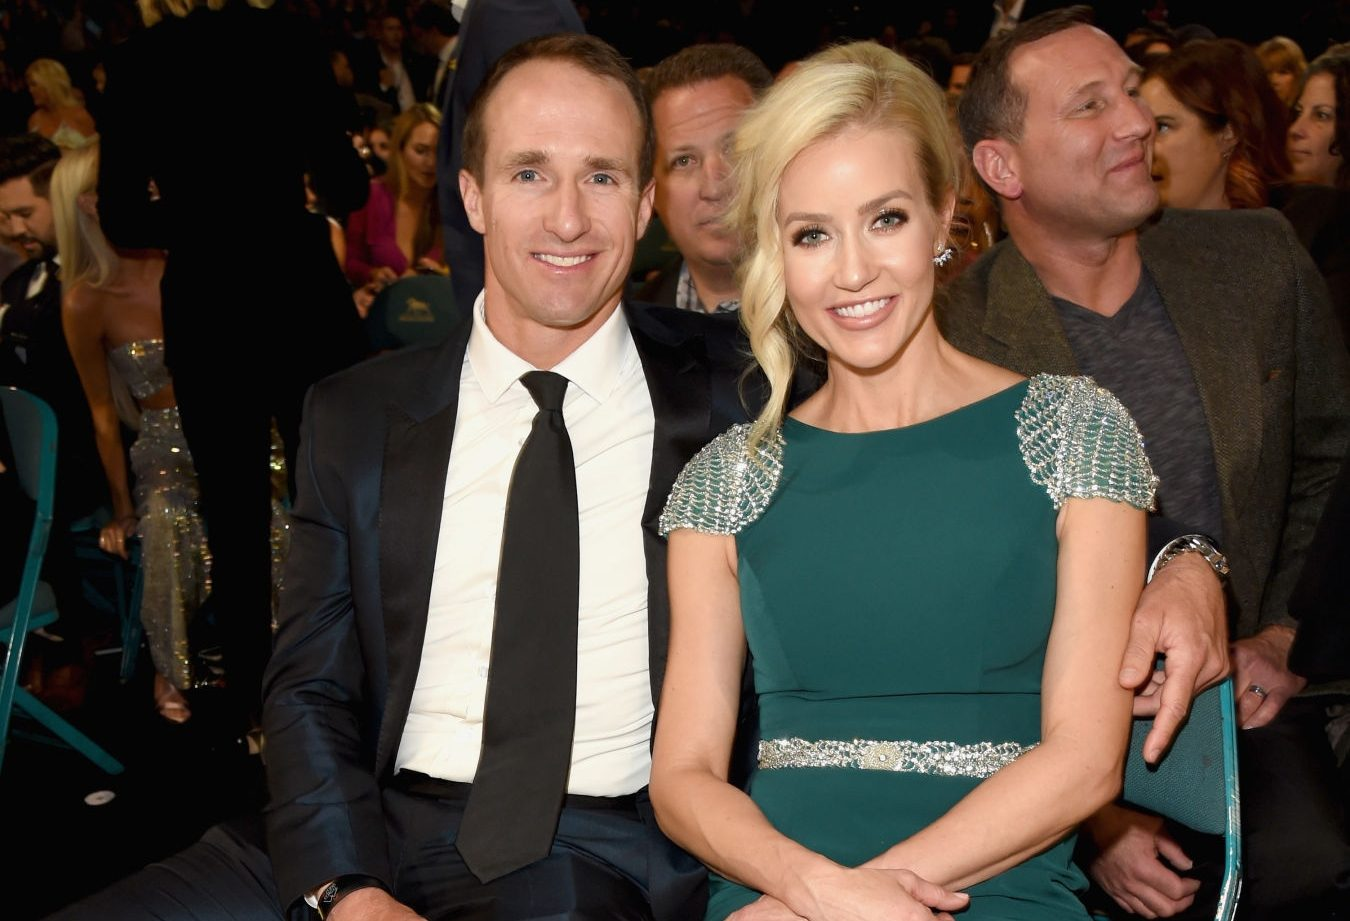 Brittany Brees Net Worth